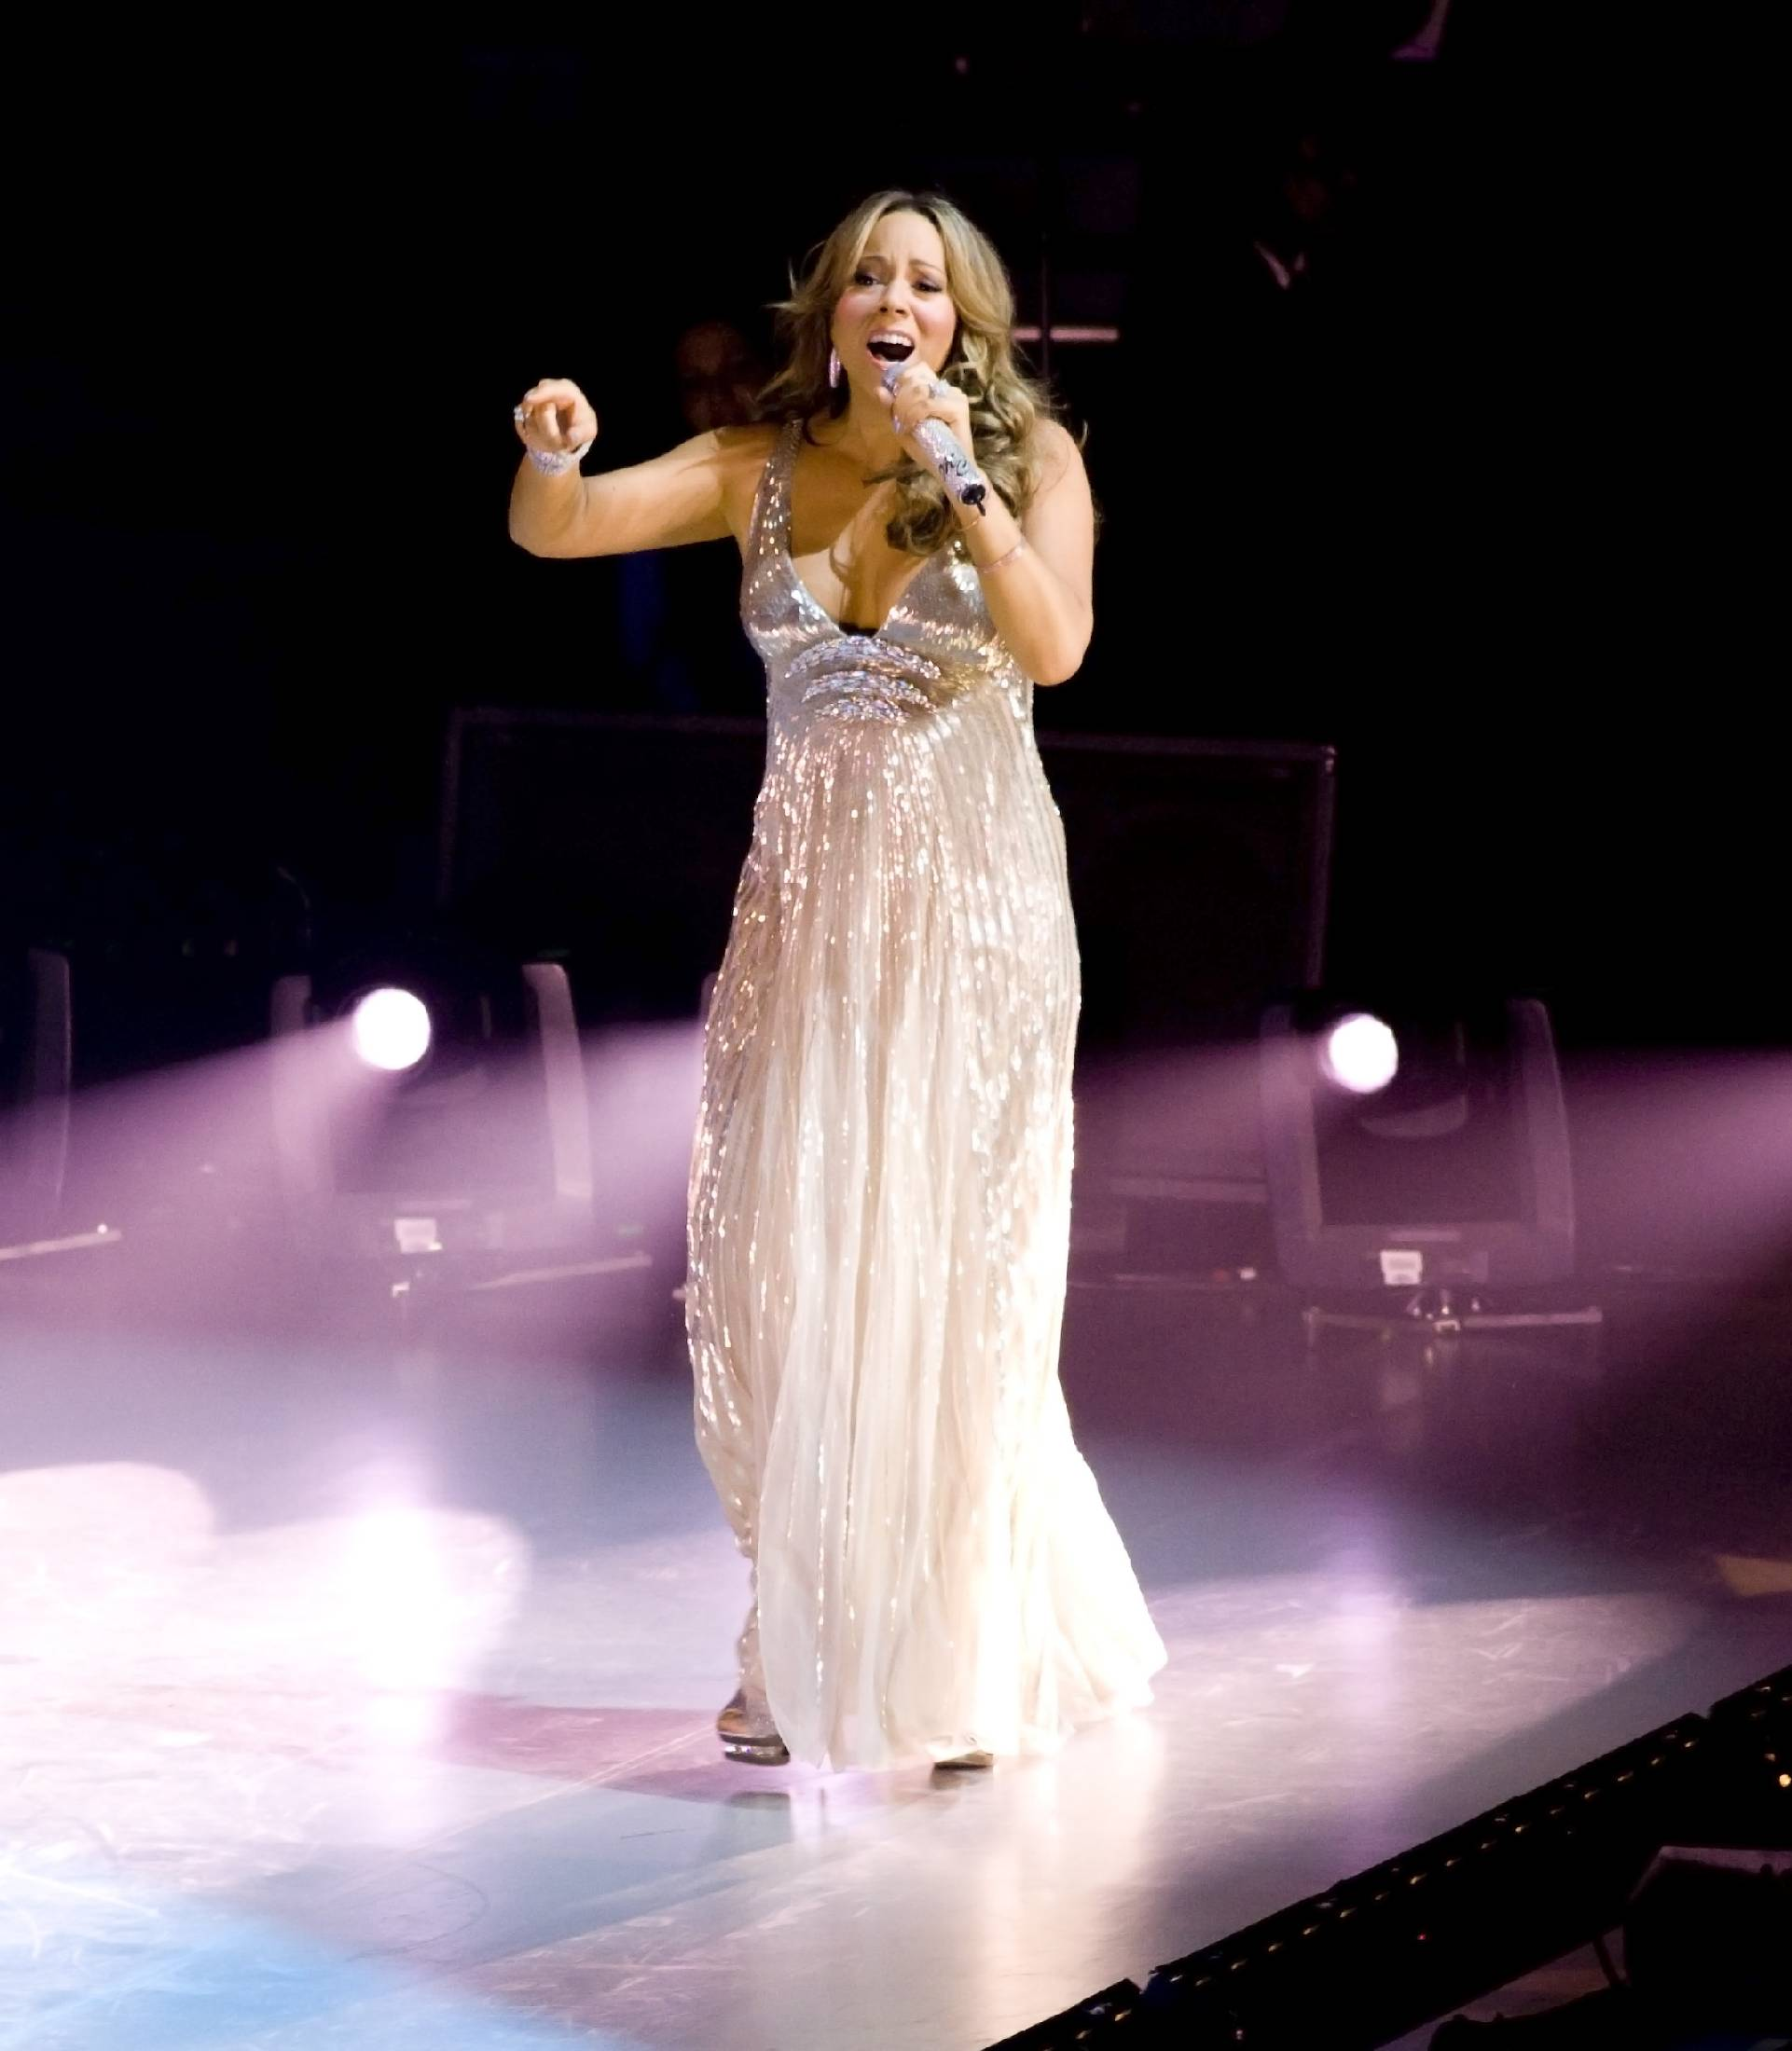 53562_Mariah_Carey_performs_at_Madison_Square_Garden_in_New_York_City-3_122_466lo.jpg